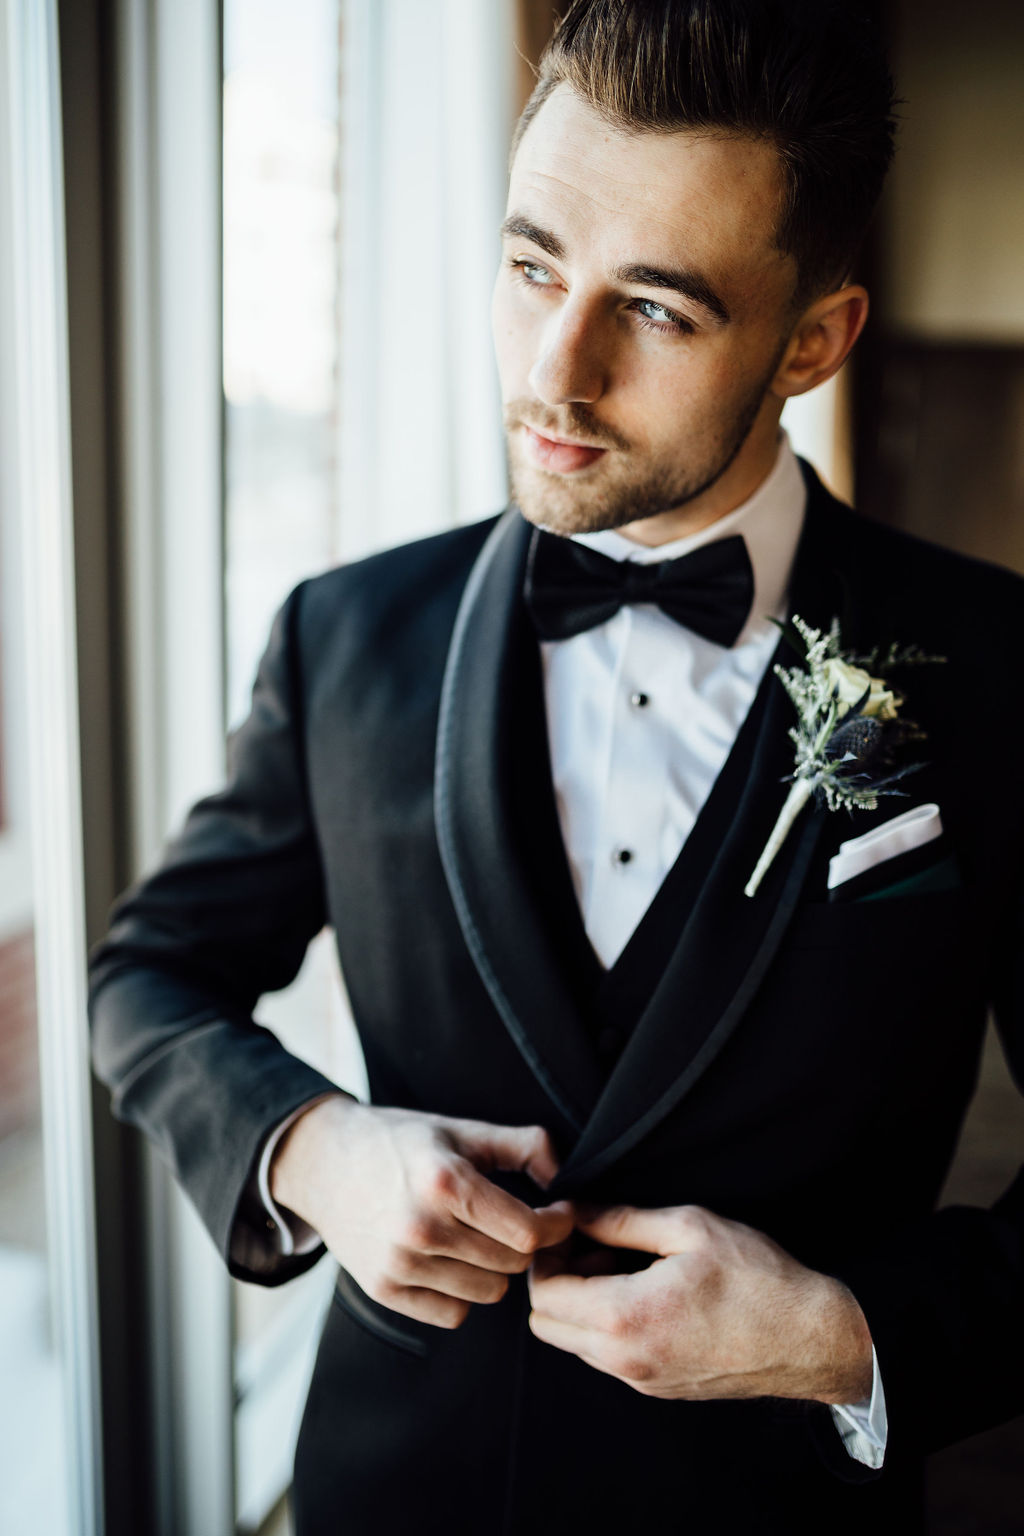 Groom wearing formal tuxedo